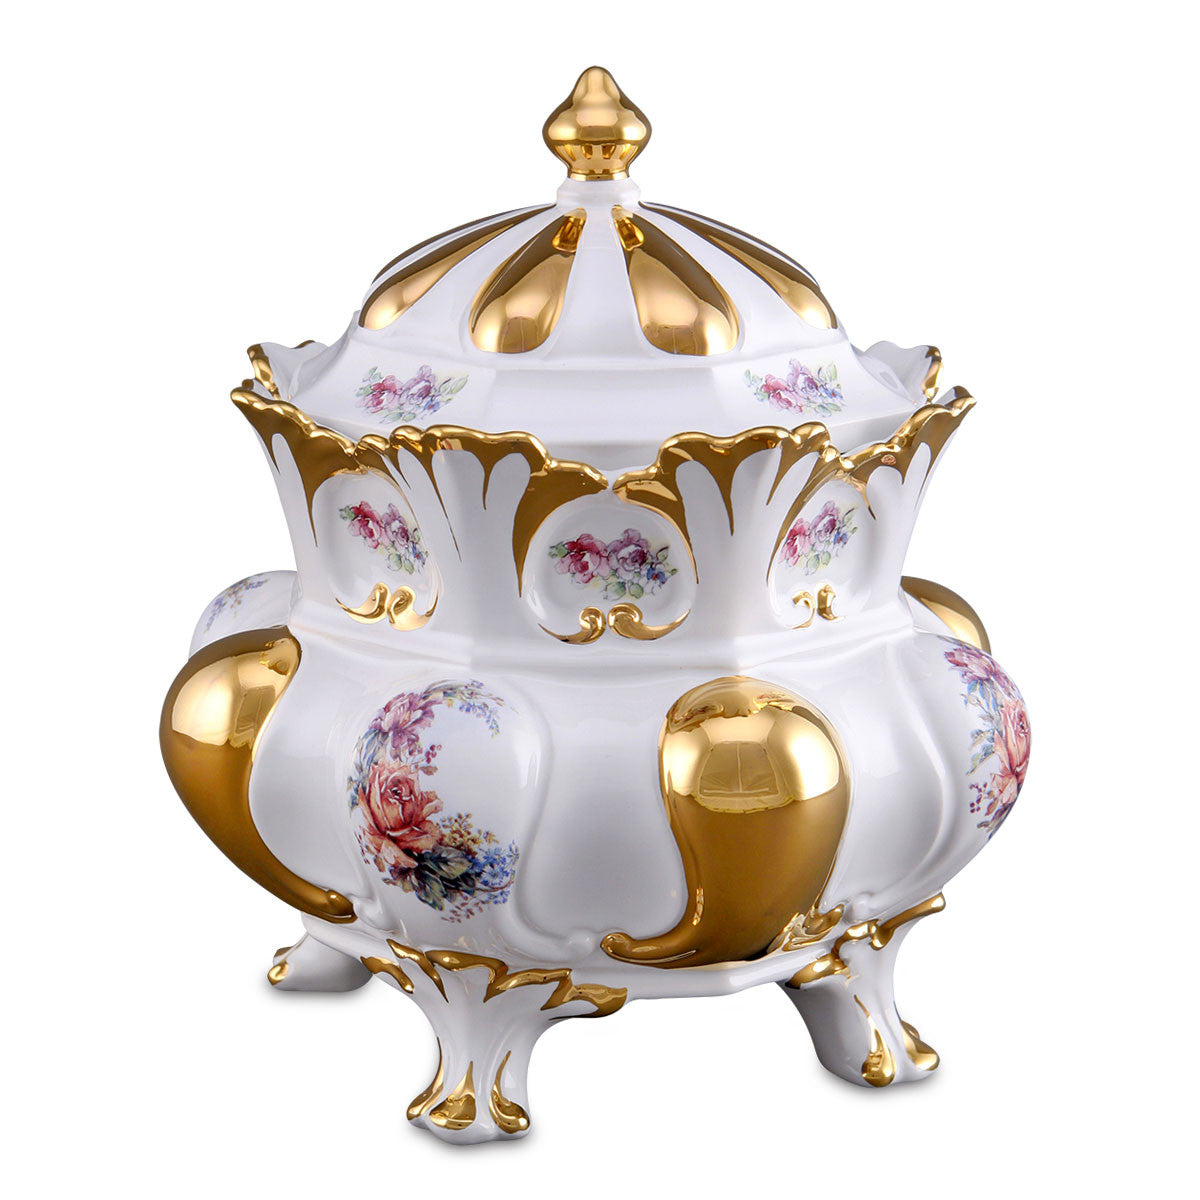 Ceramic crown box baroque style with gold accents